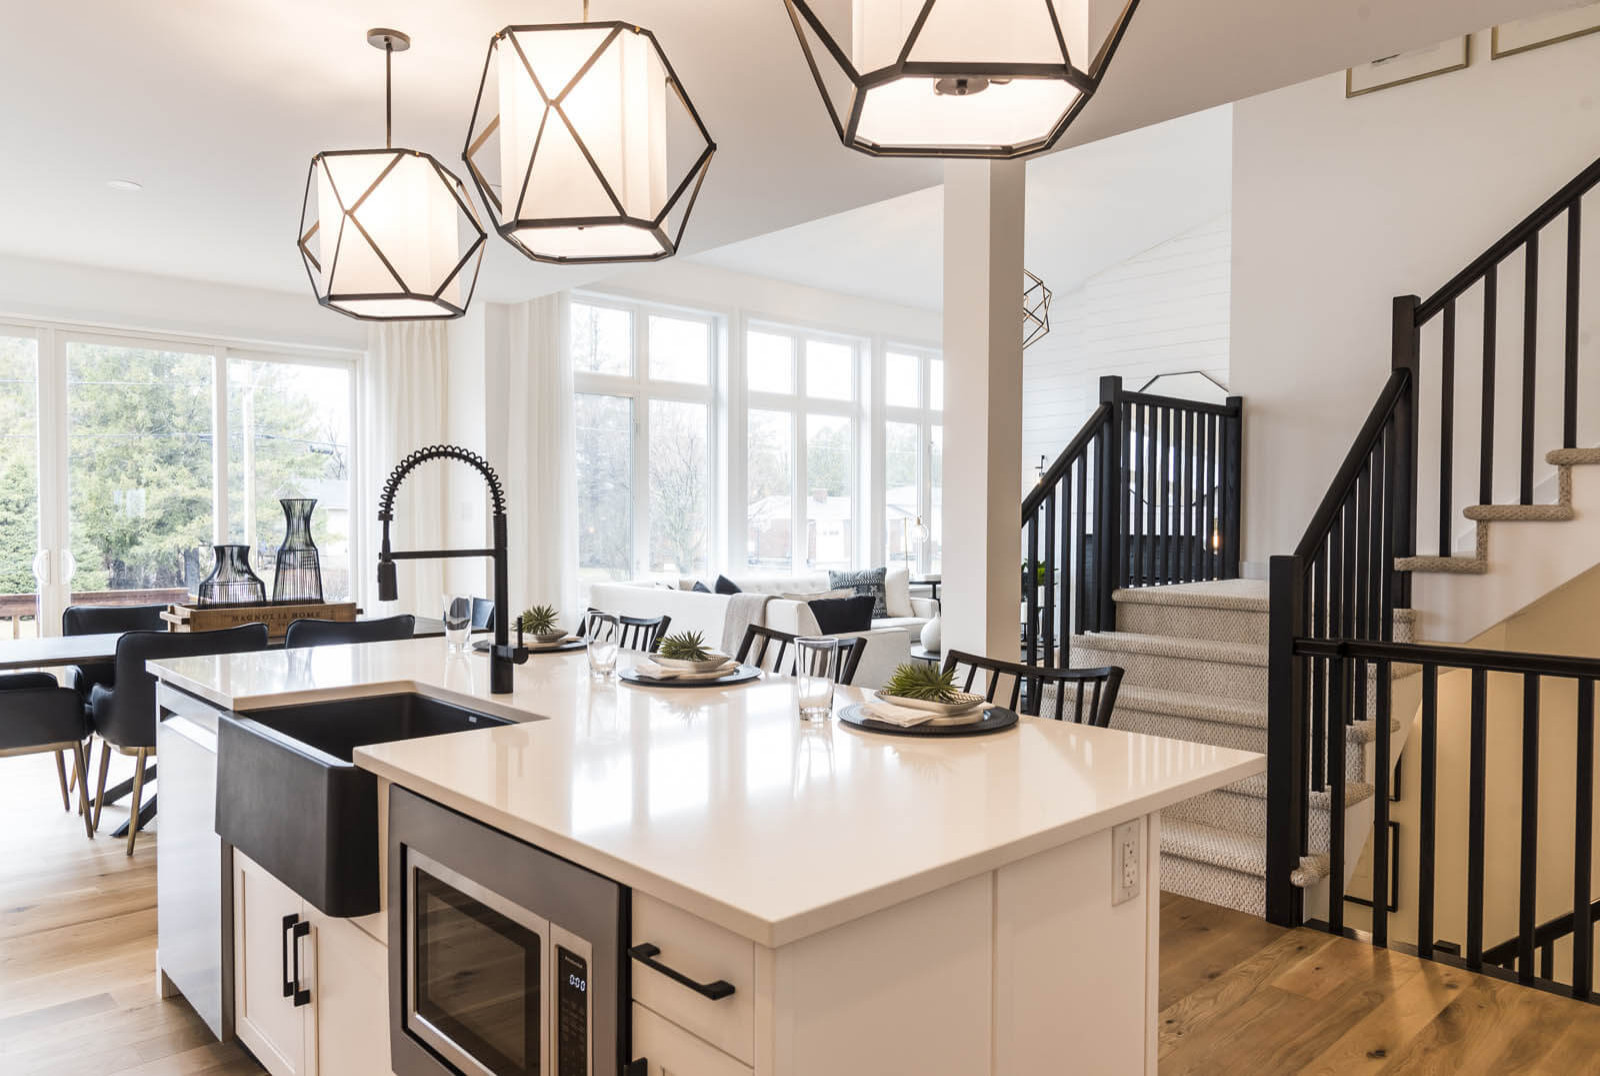 A premium kitchen island with a built-in microwave and apron-front sink